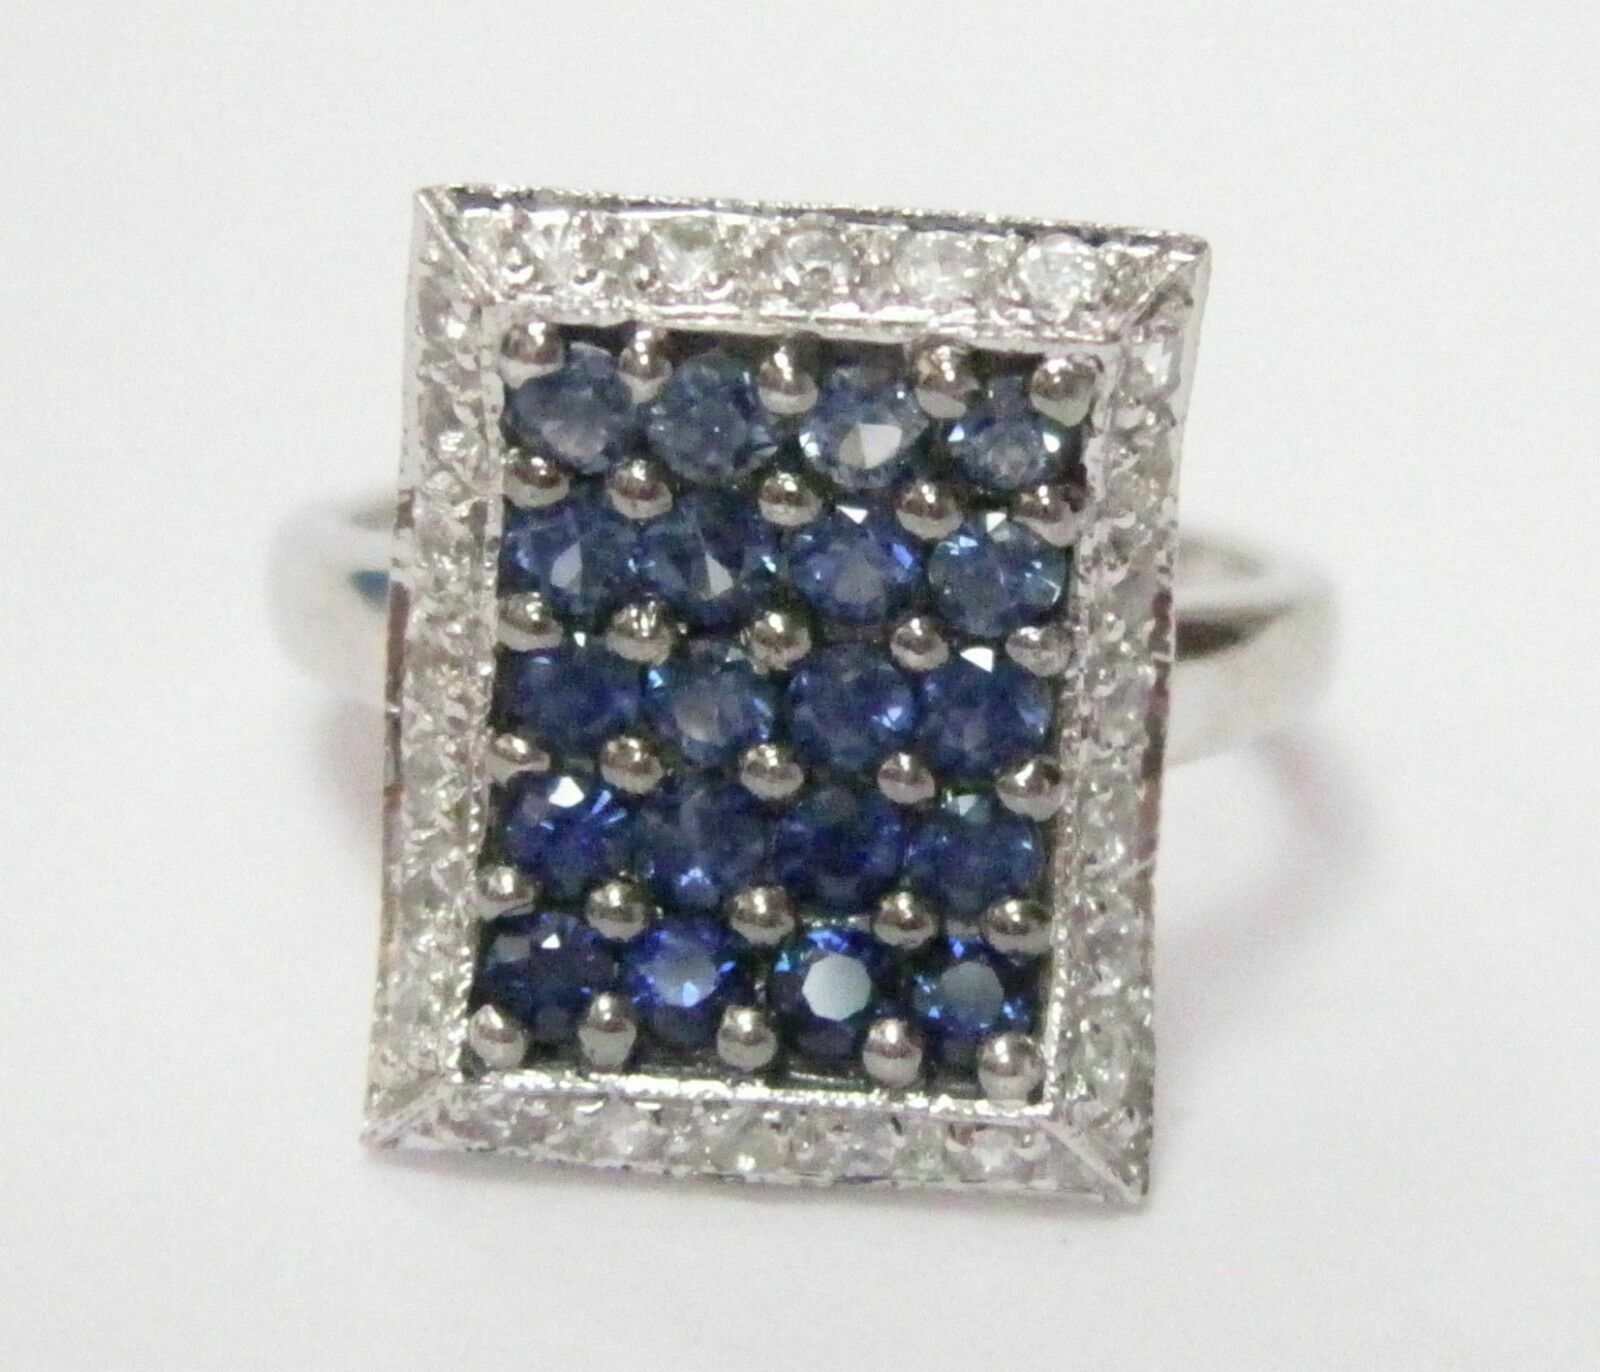 2.0 TCW Natural Blue Sapphire & Diamond Accents Ring Size 5 14k White Gold